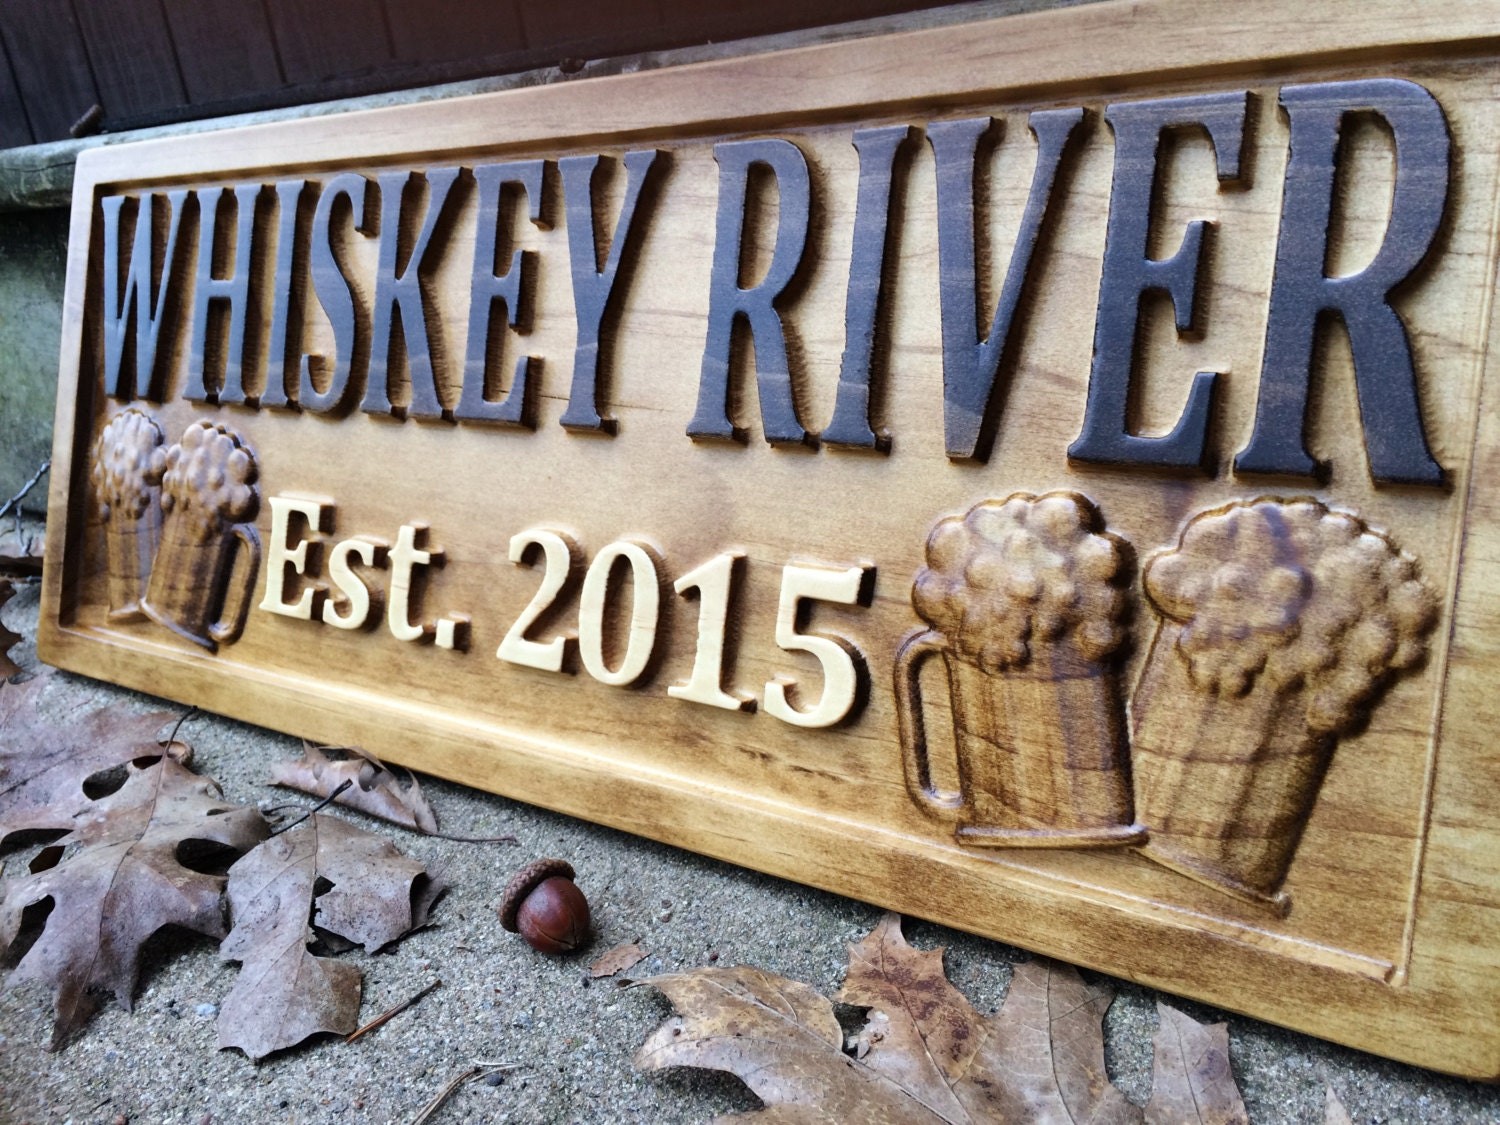 Man Cave Gift Ideas Uk : Personalized man cave sign custom bar signs wood groomsmen